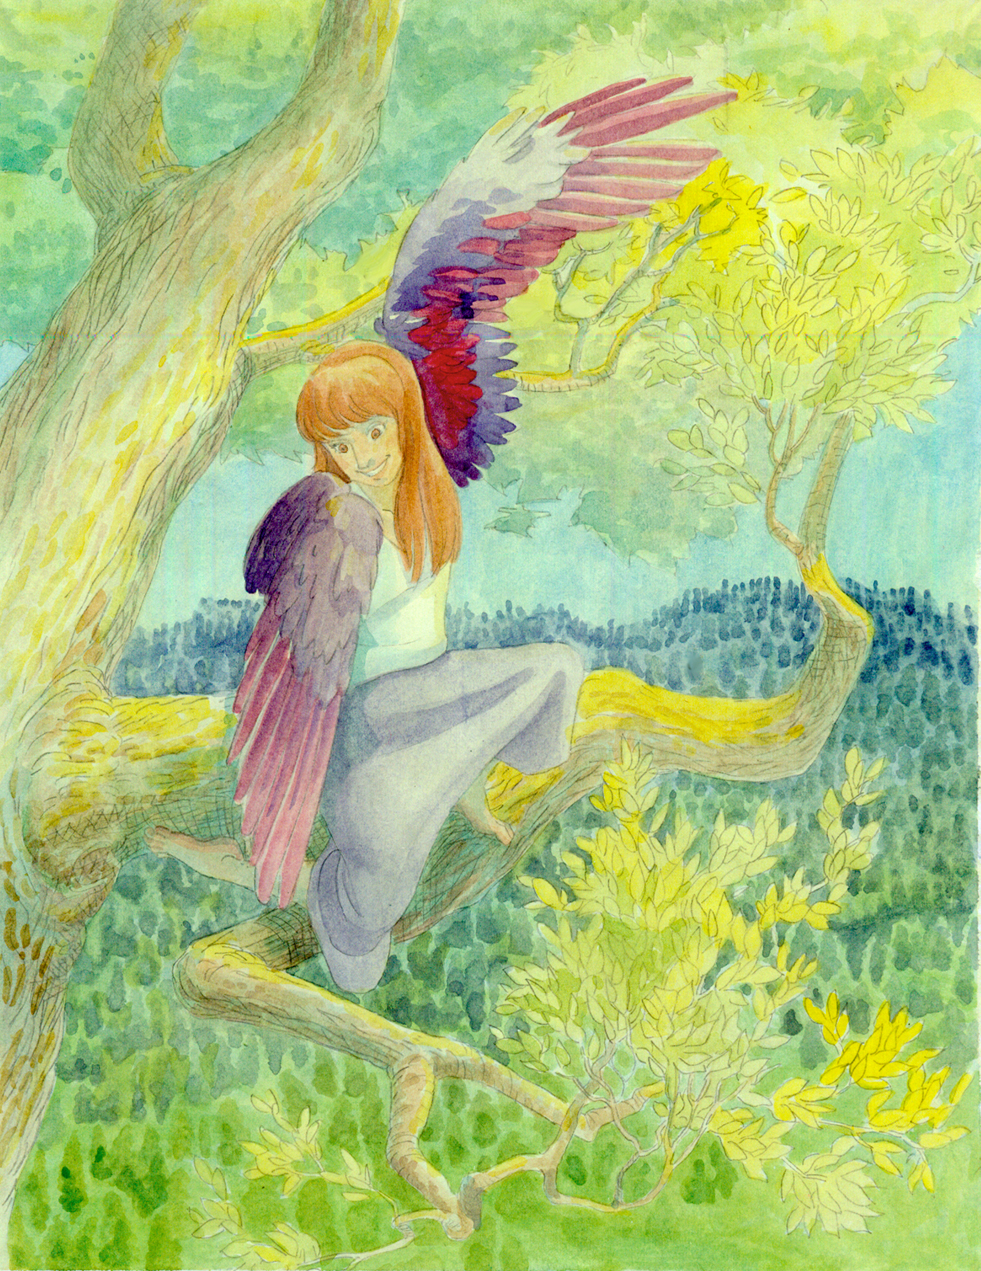 A young girl in a tree looks proudly at her new wings